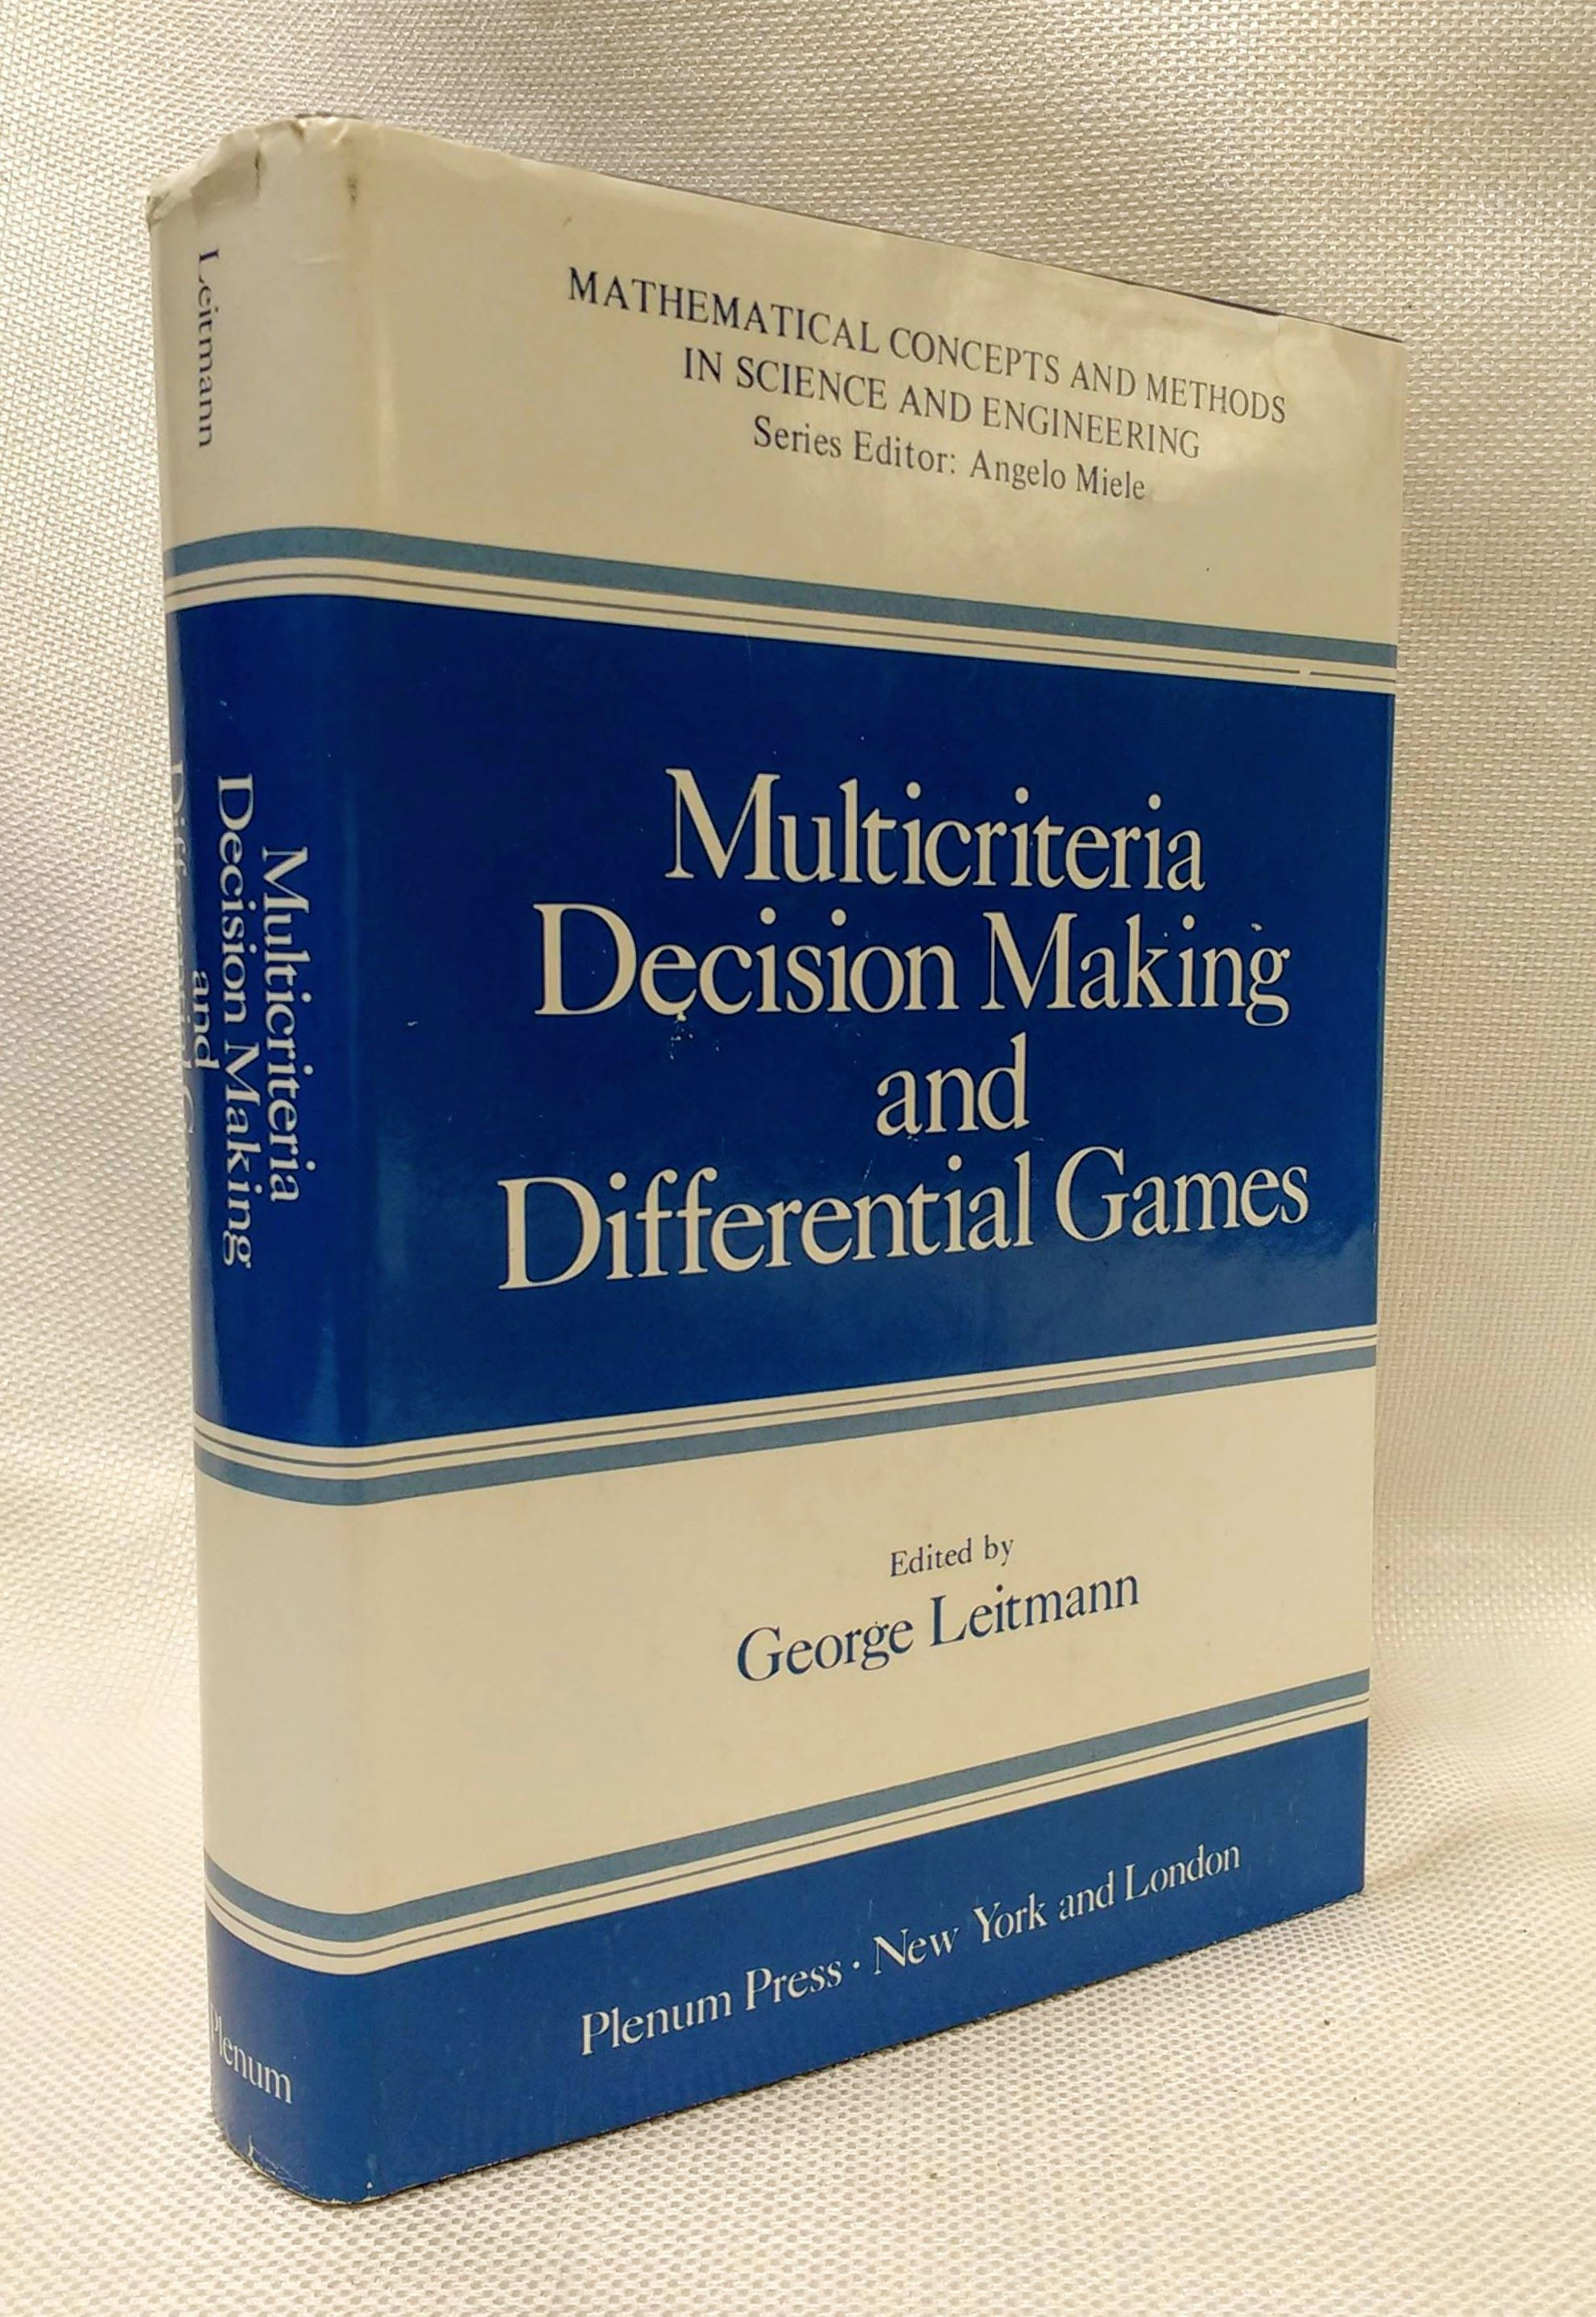 Multicriteria Decision Making and Differential Games (Mathematical Concepts and Methods in Science and Engineering), Leitmann, George [Editor]